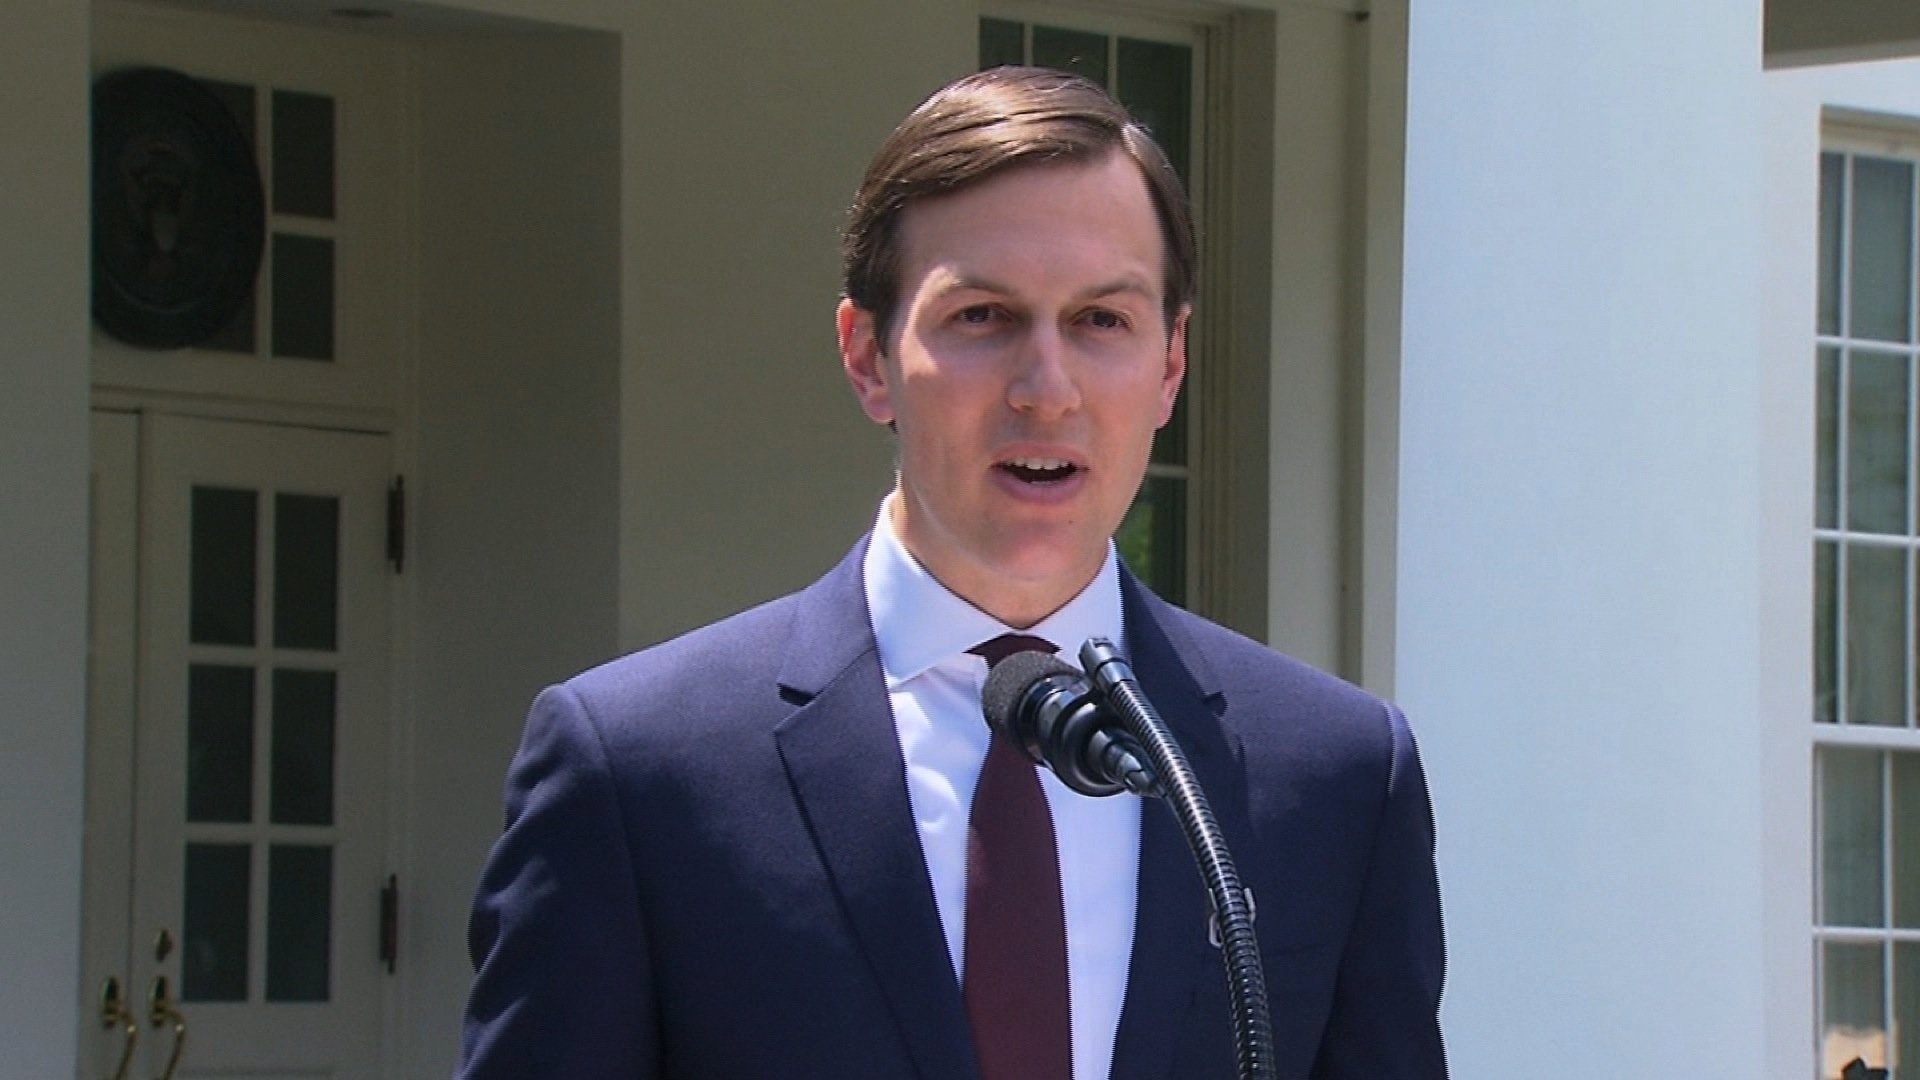 """The head of a government bureau responsible for clearing background checks told lawmakers said he has """"never seen that level of mistakes"""" when asked about numerous omissions in Jared Kushner's security clearance application."""